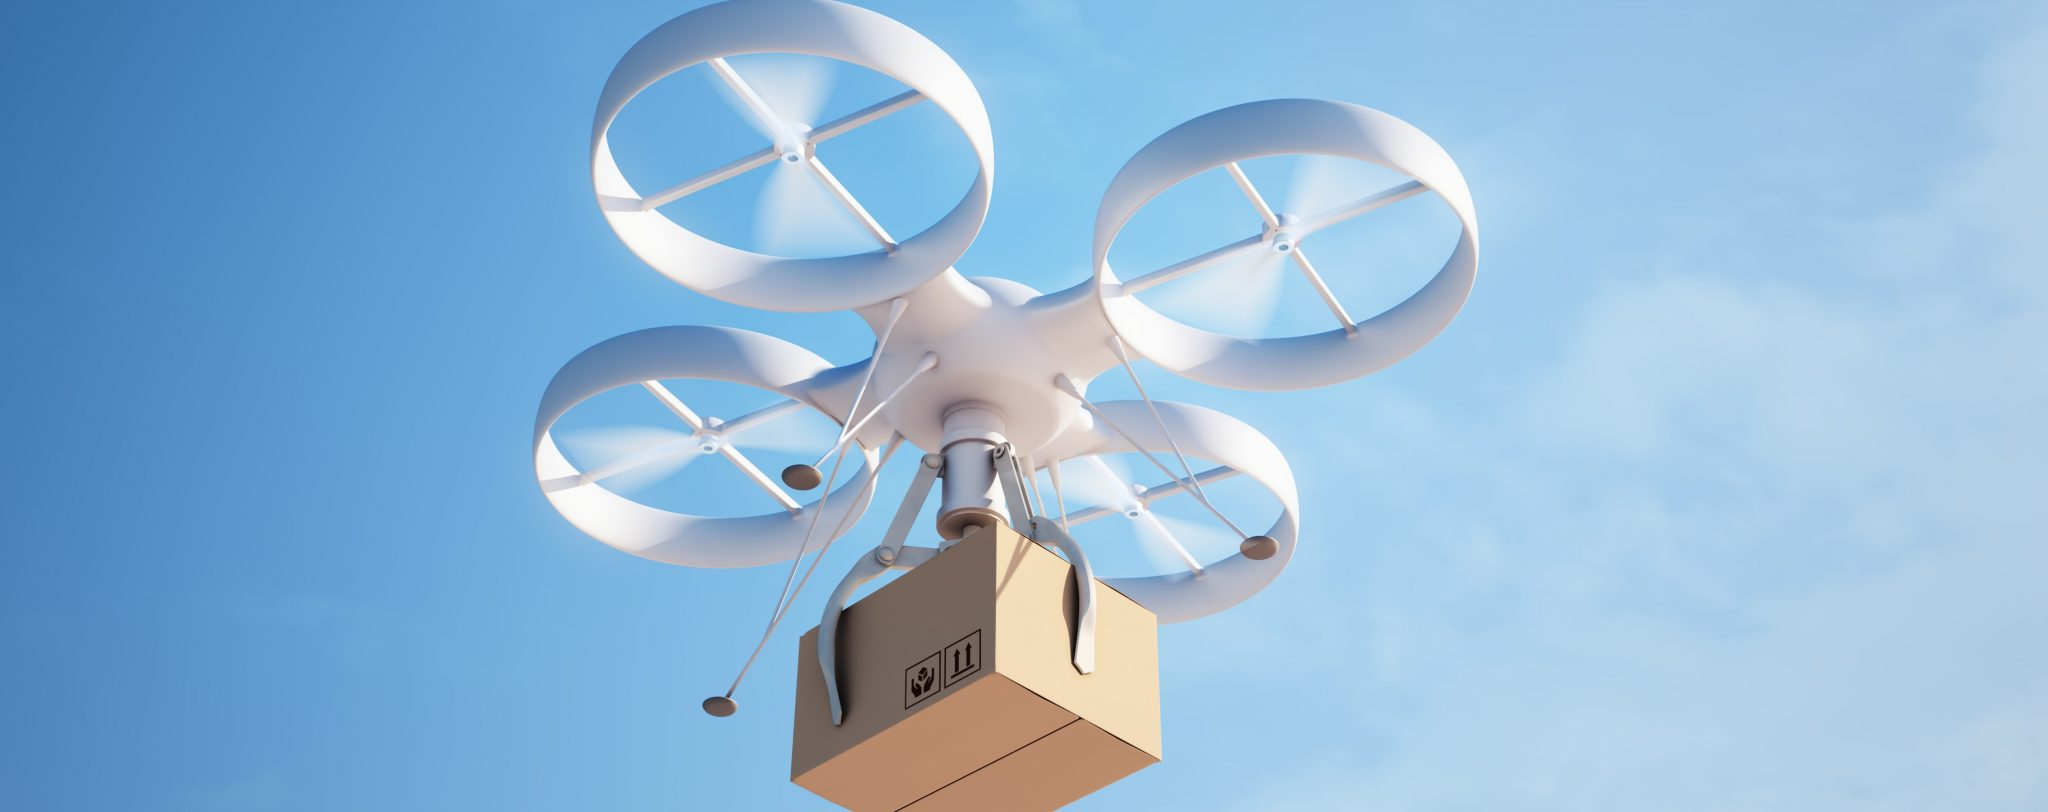 Your Amazon package delivered via drone